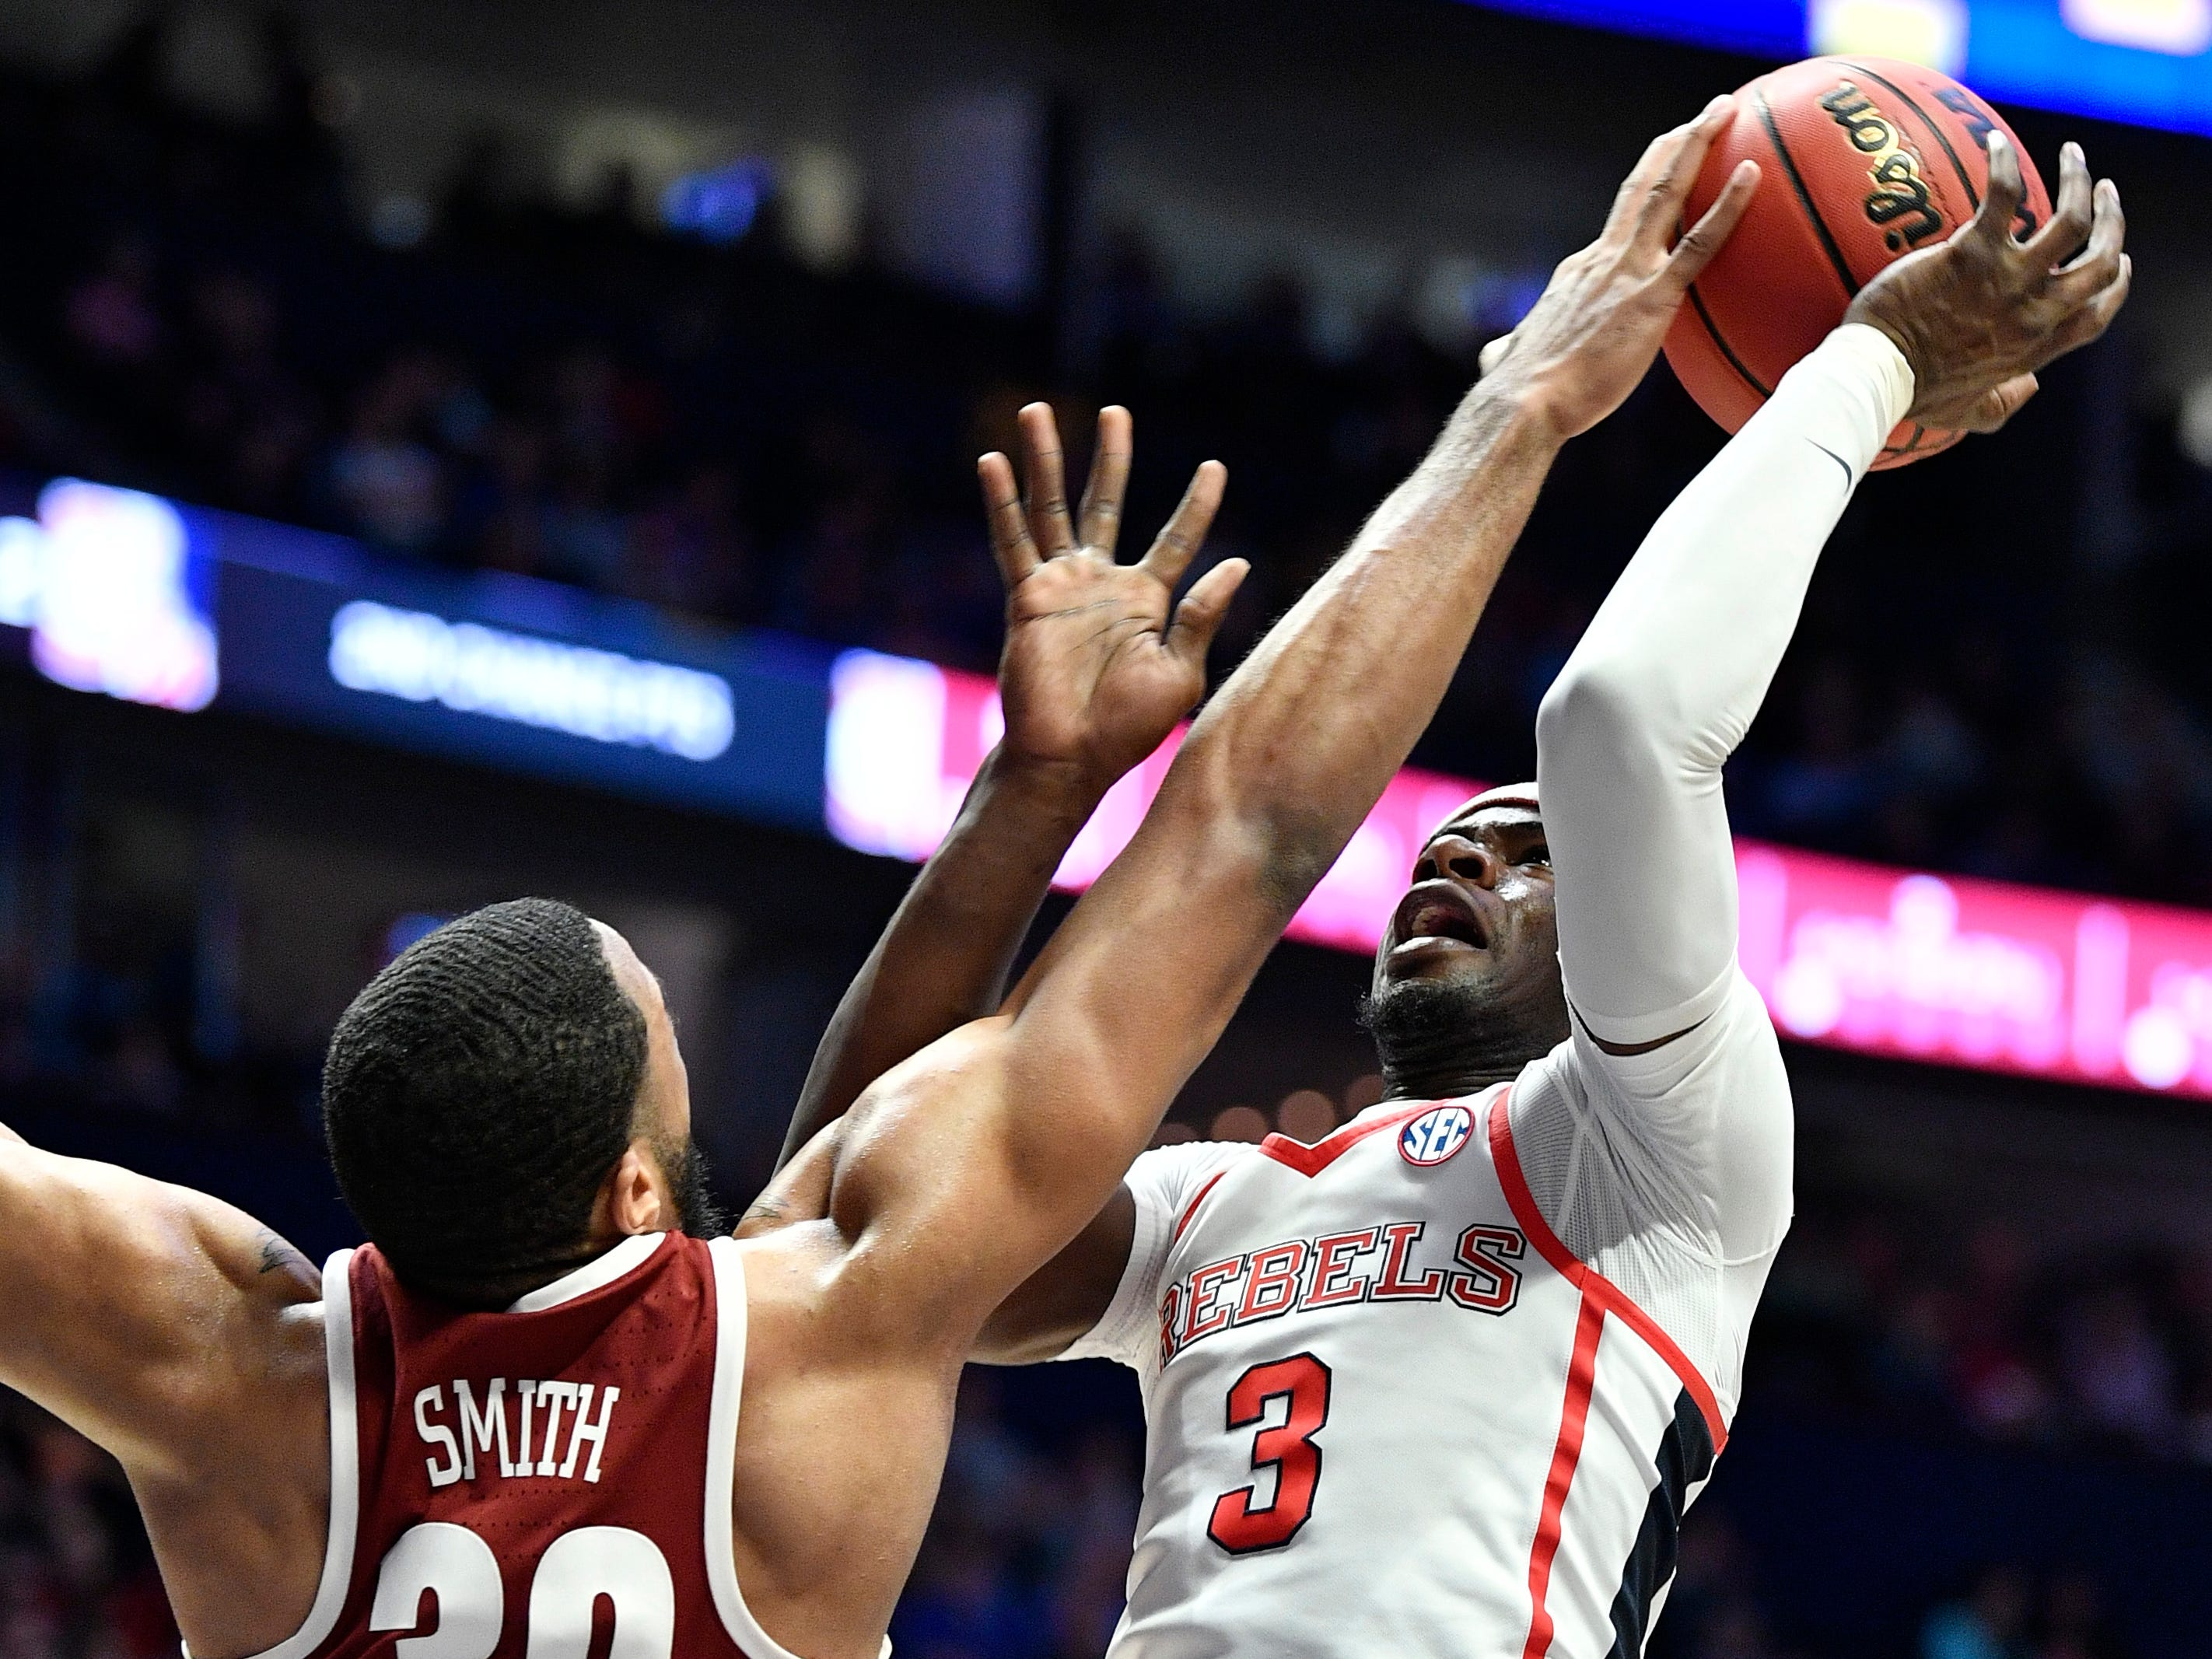 Alabama forward Galin Smith (30) strips the ball from Ole Miss guard Terence Davis (3) during the second half of the SEC Men's Basketball Tournament game at Bridgestone Arena in Nashville, Tenn., Thursday, March 14, 2019.